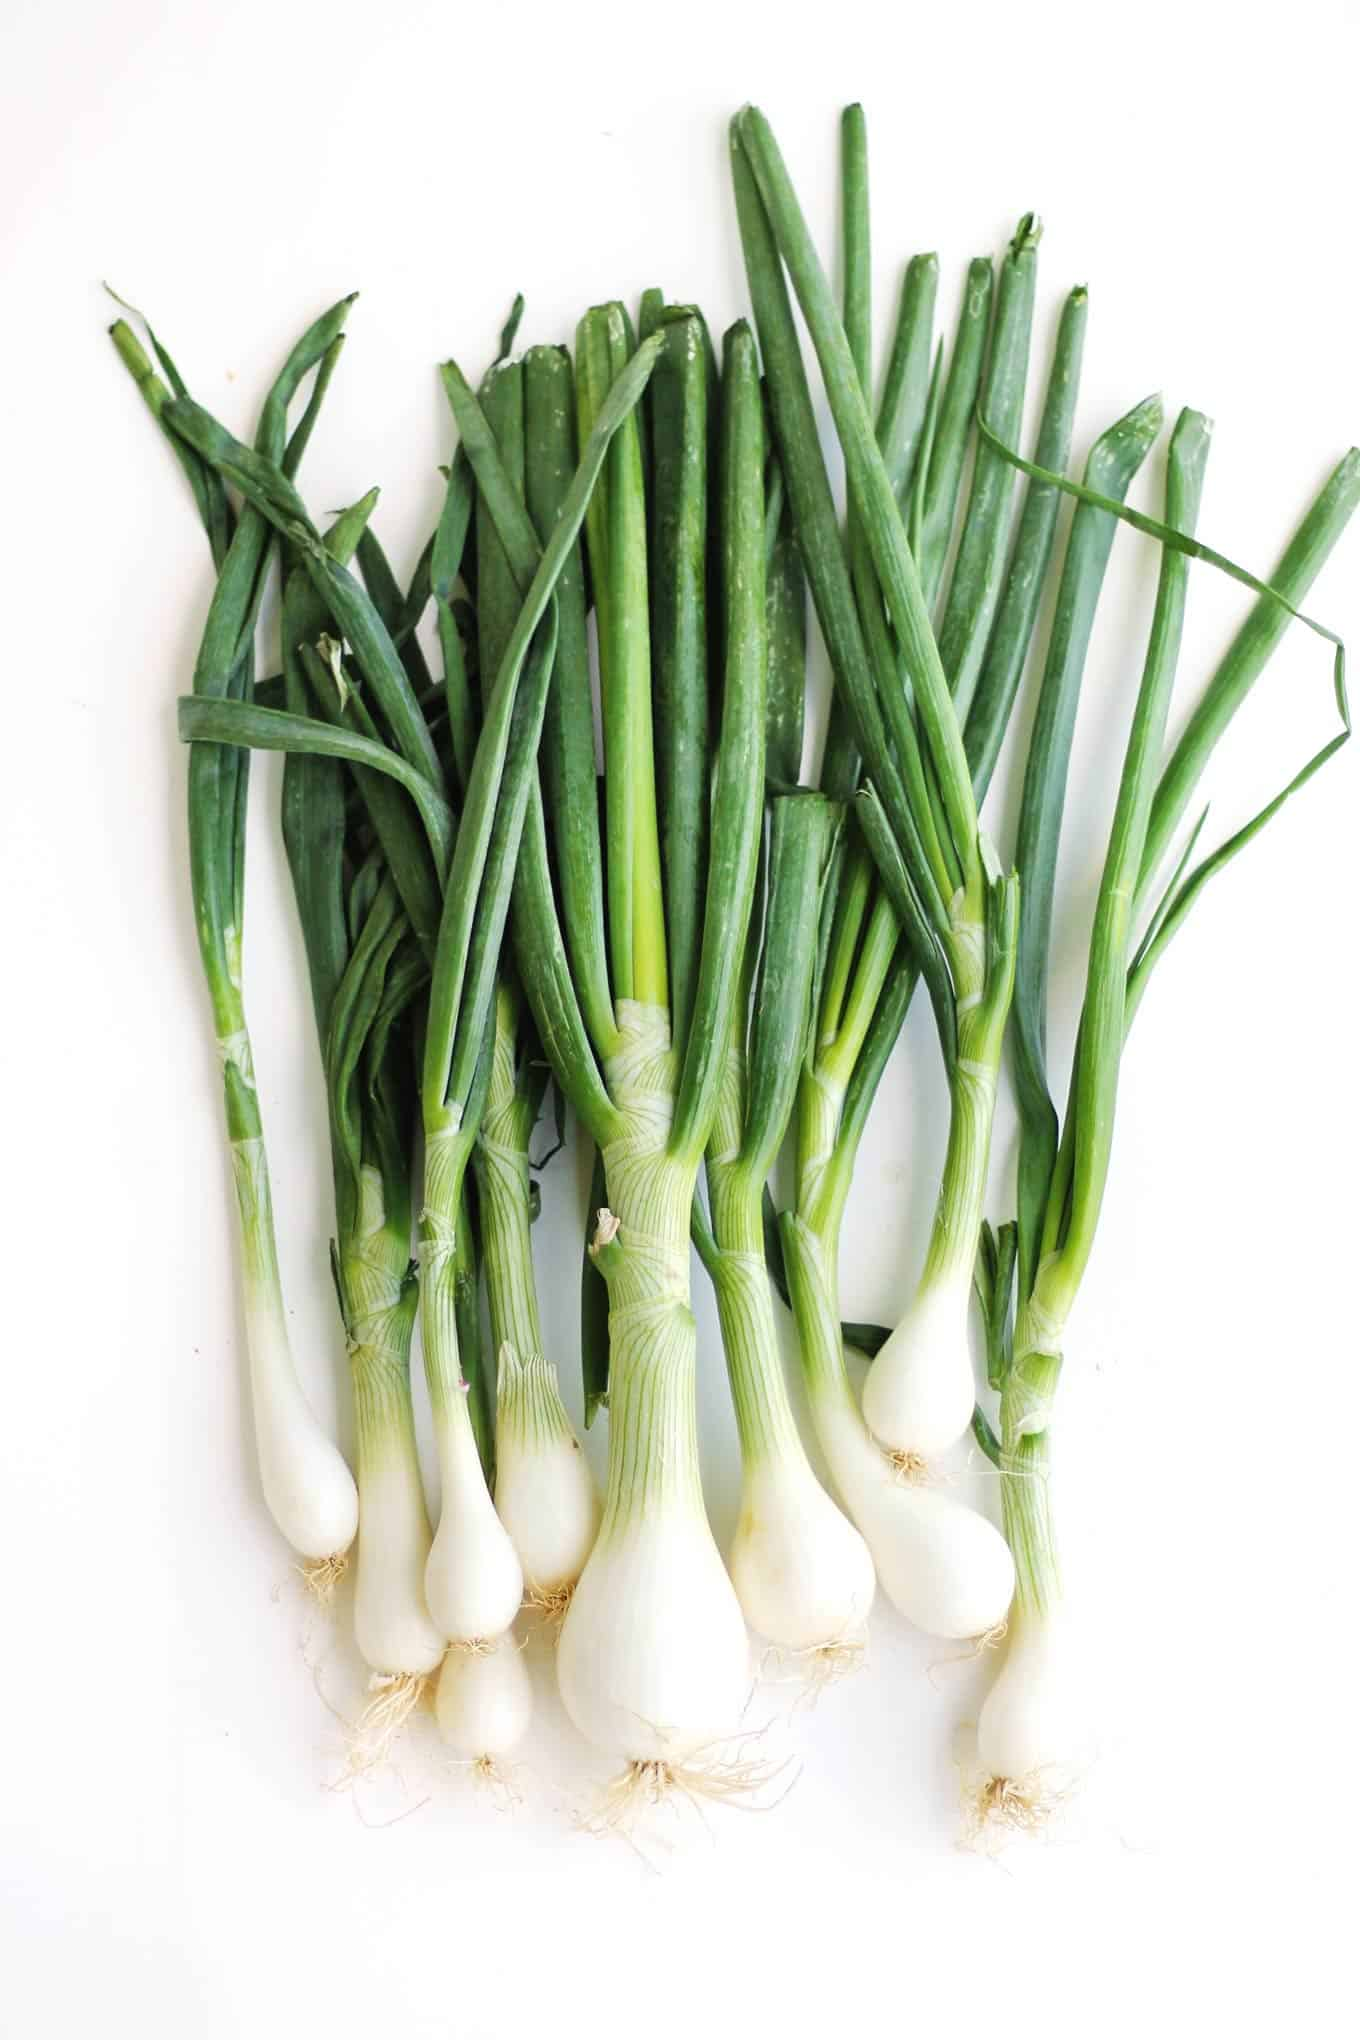 Spring onion photography